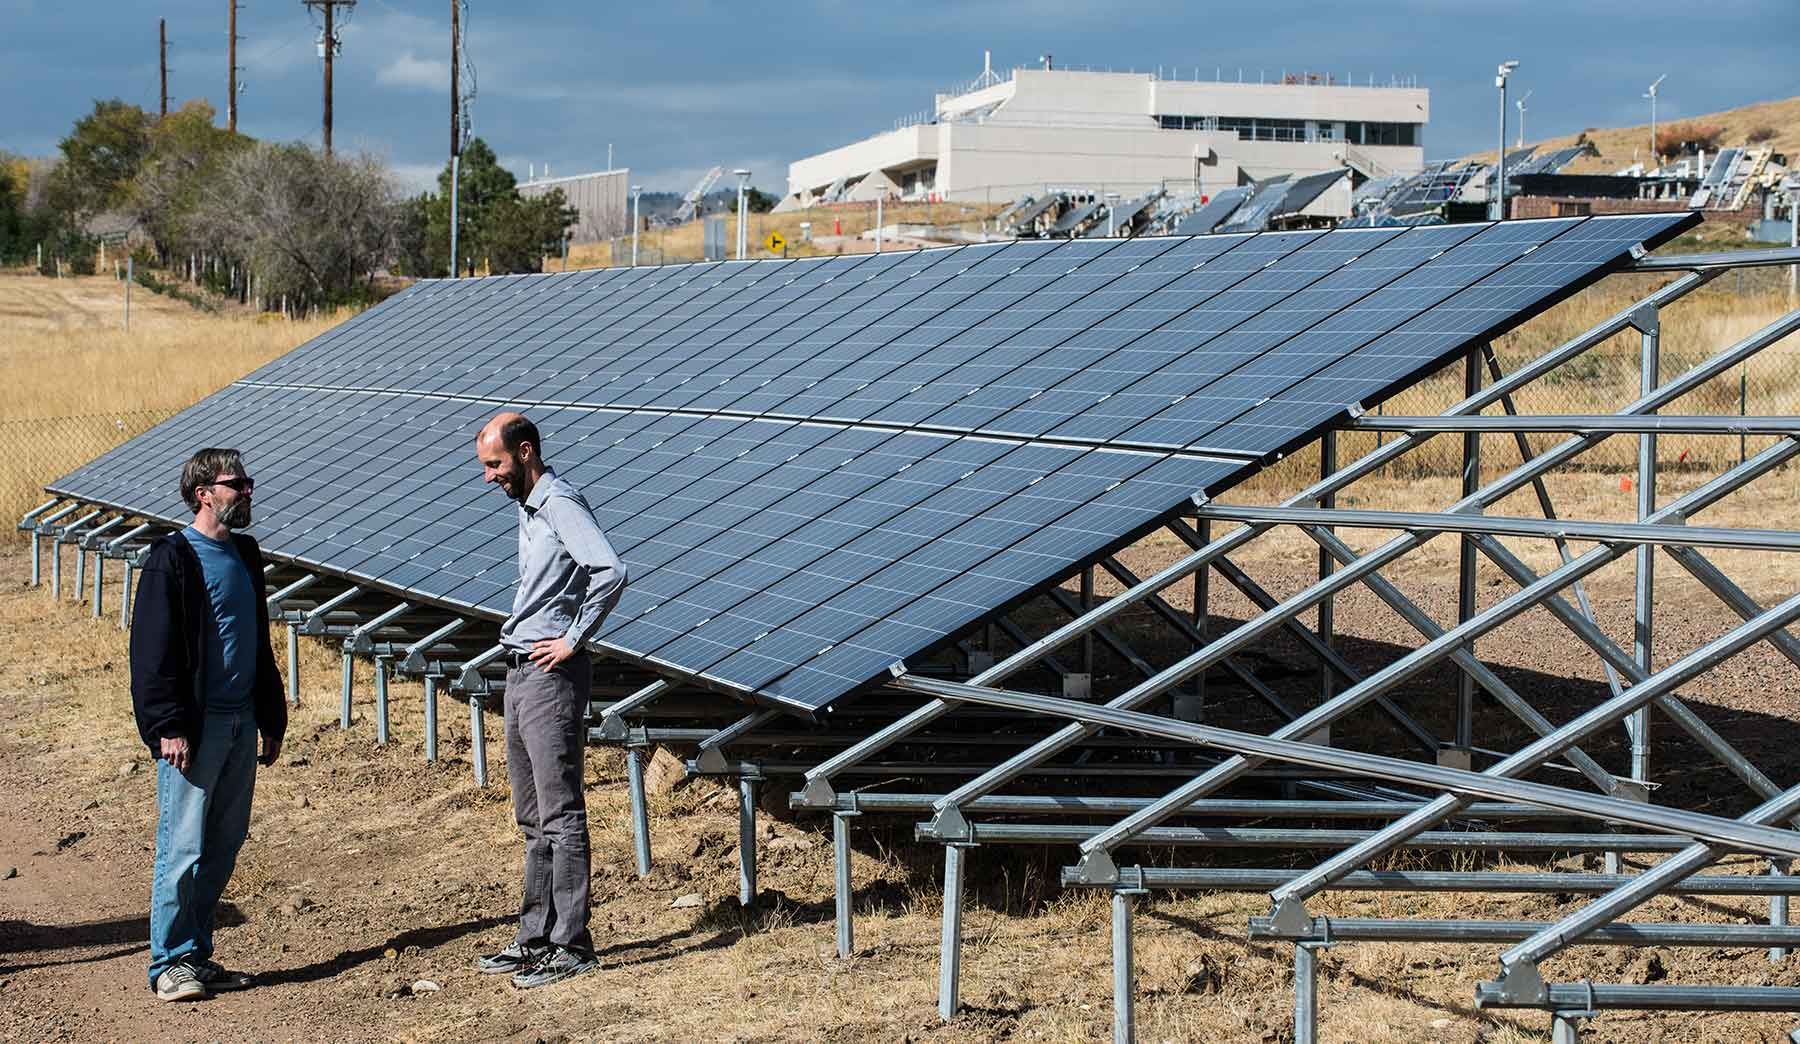 Two men stand next to solar modules in a field on the NREL campus.